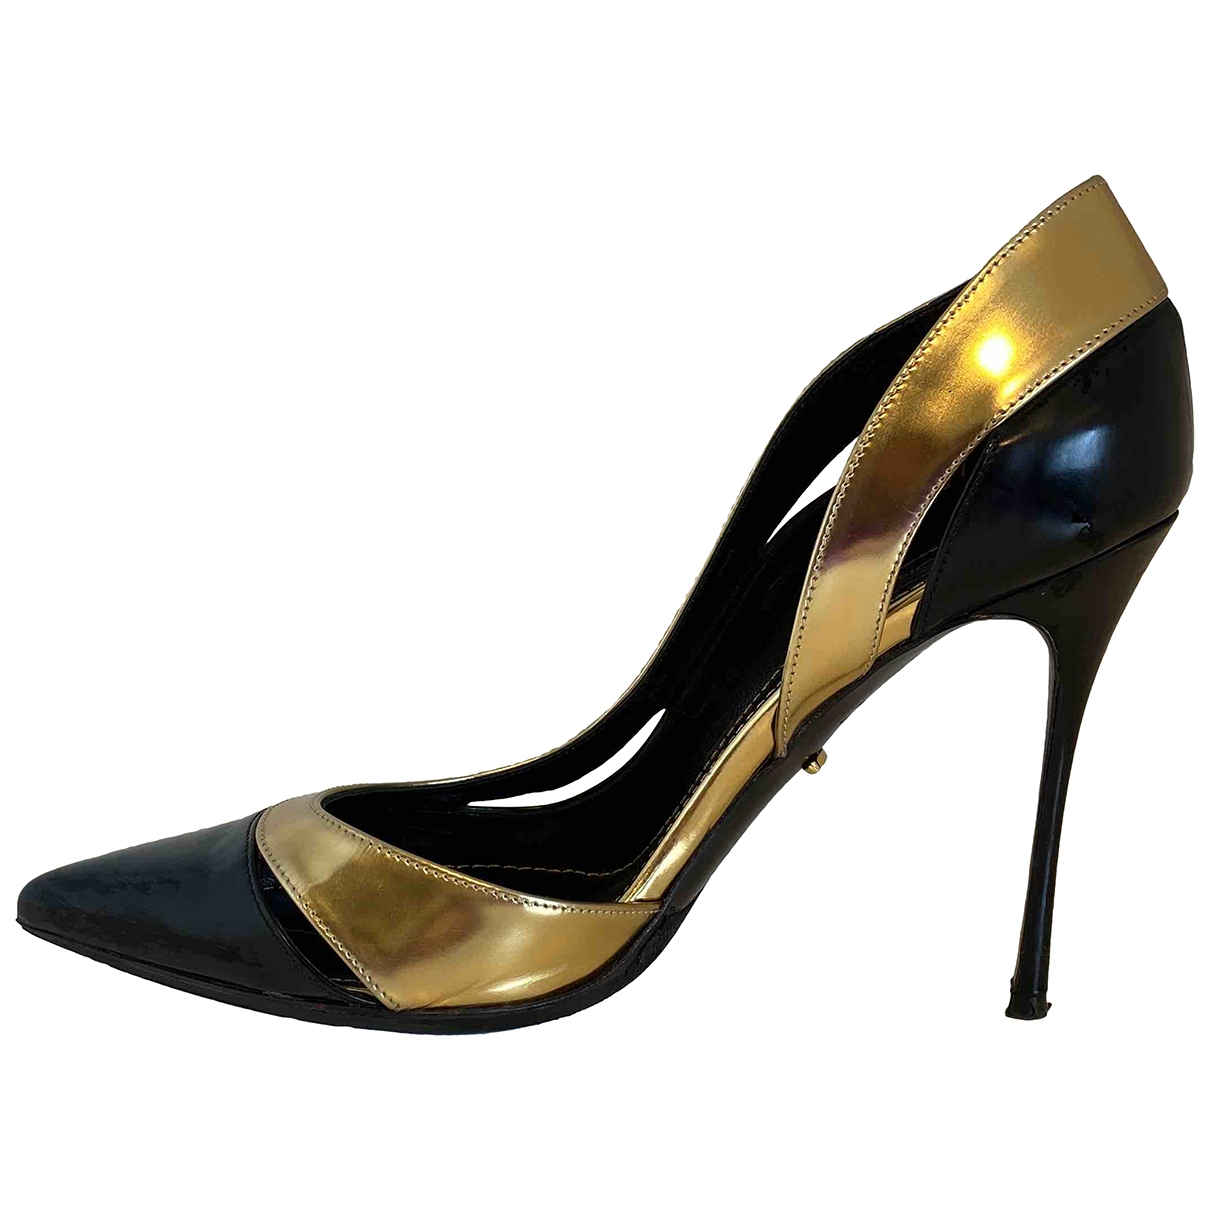 Sergio Rossi \N Pumps in  Schwarz Lackleder